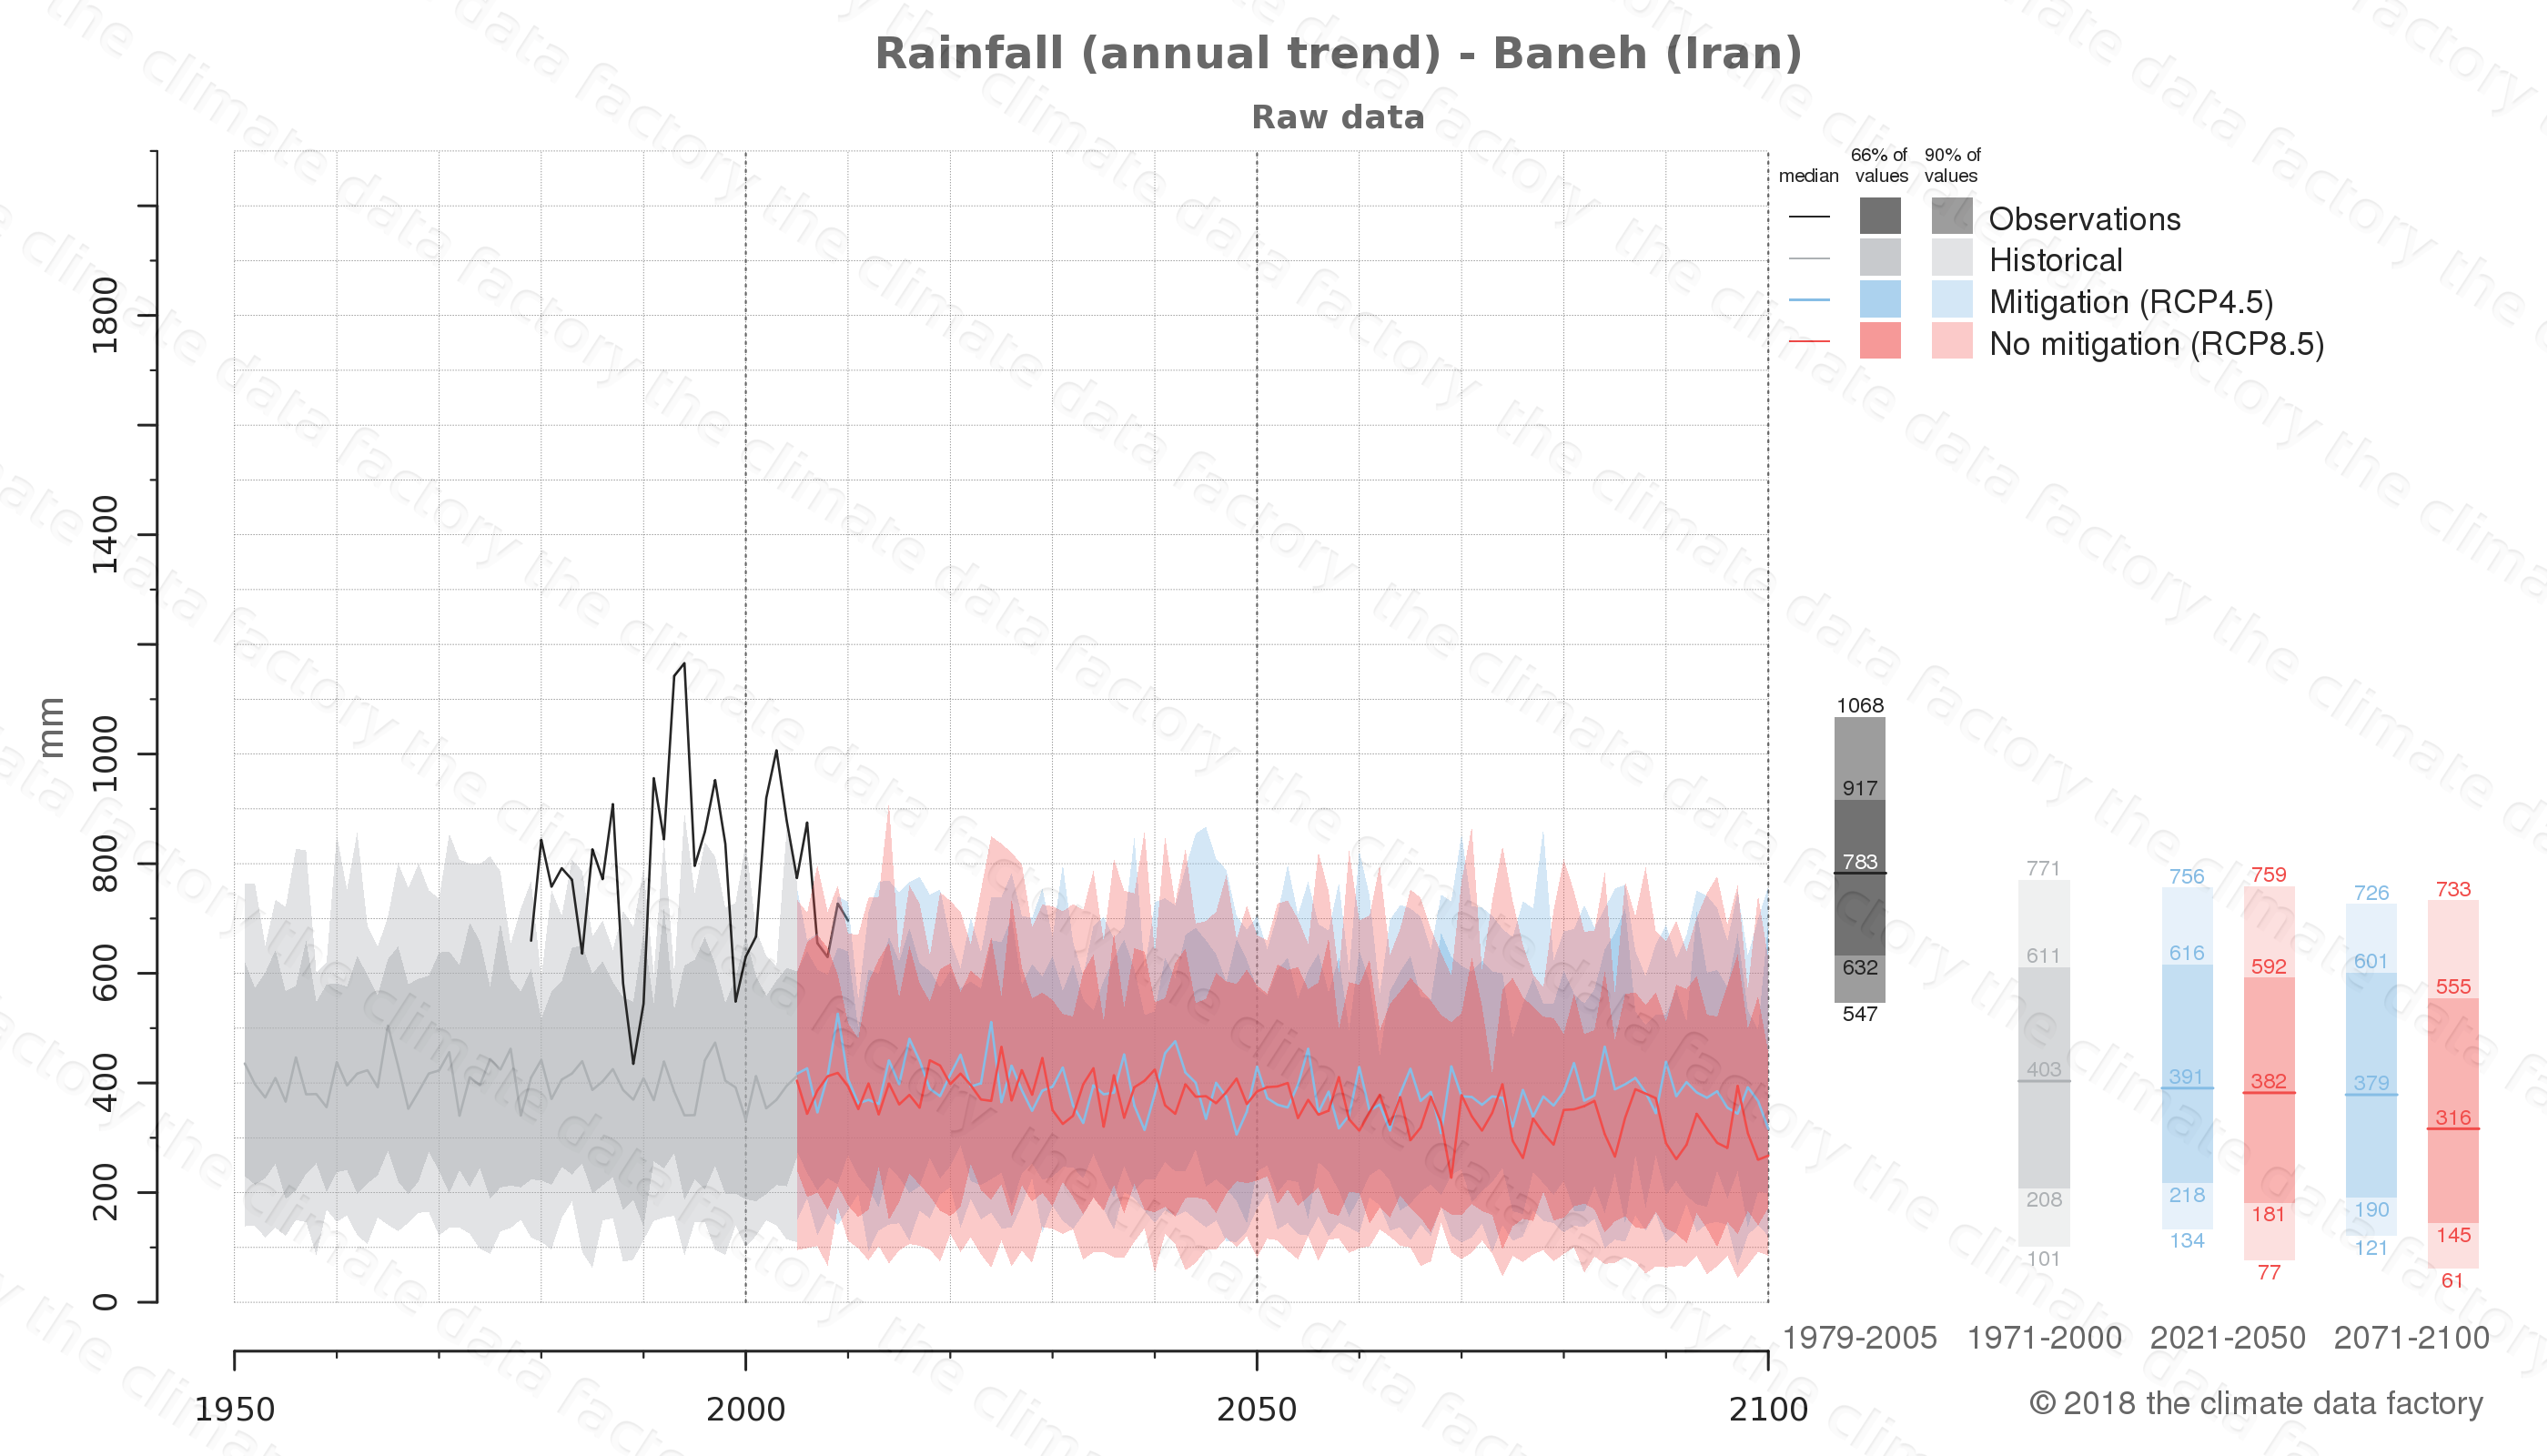 climate change data policy adaptation climate graph city data rainfall baneh iran